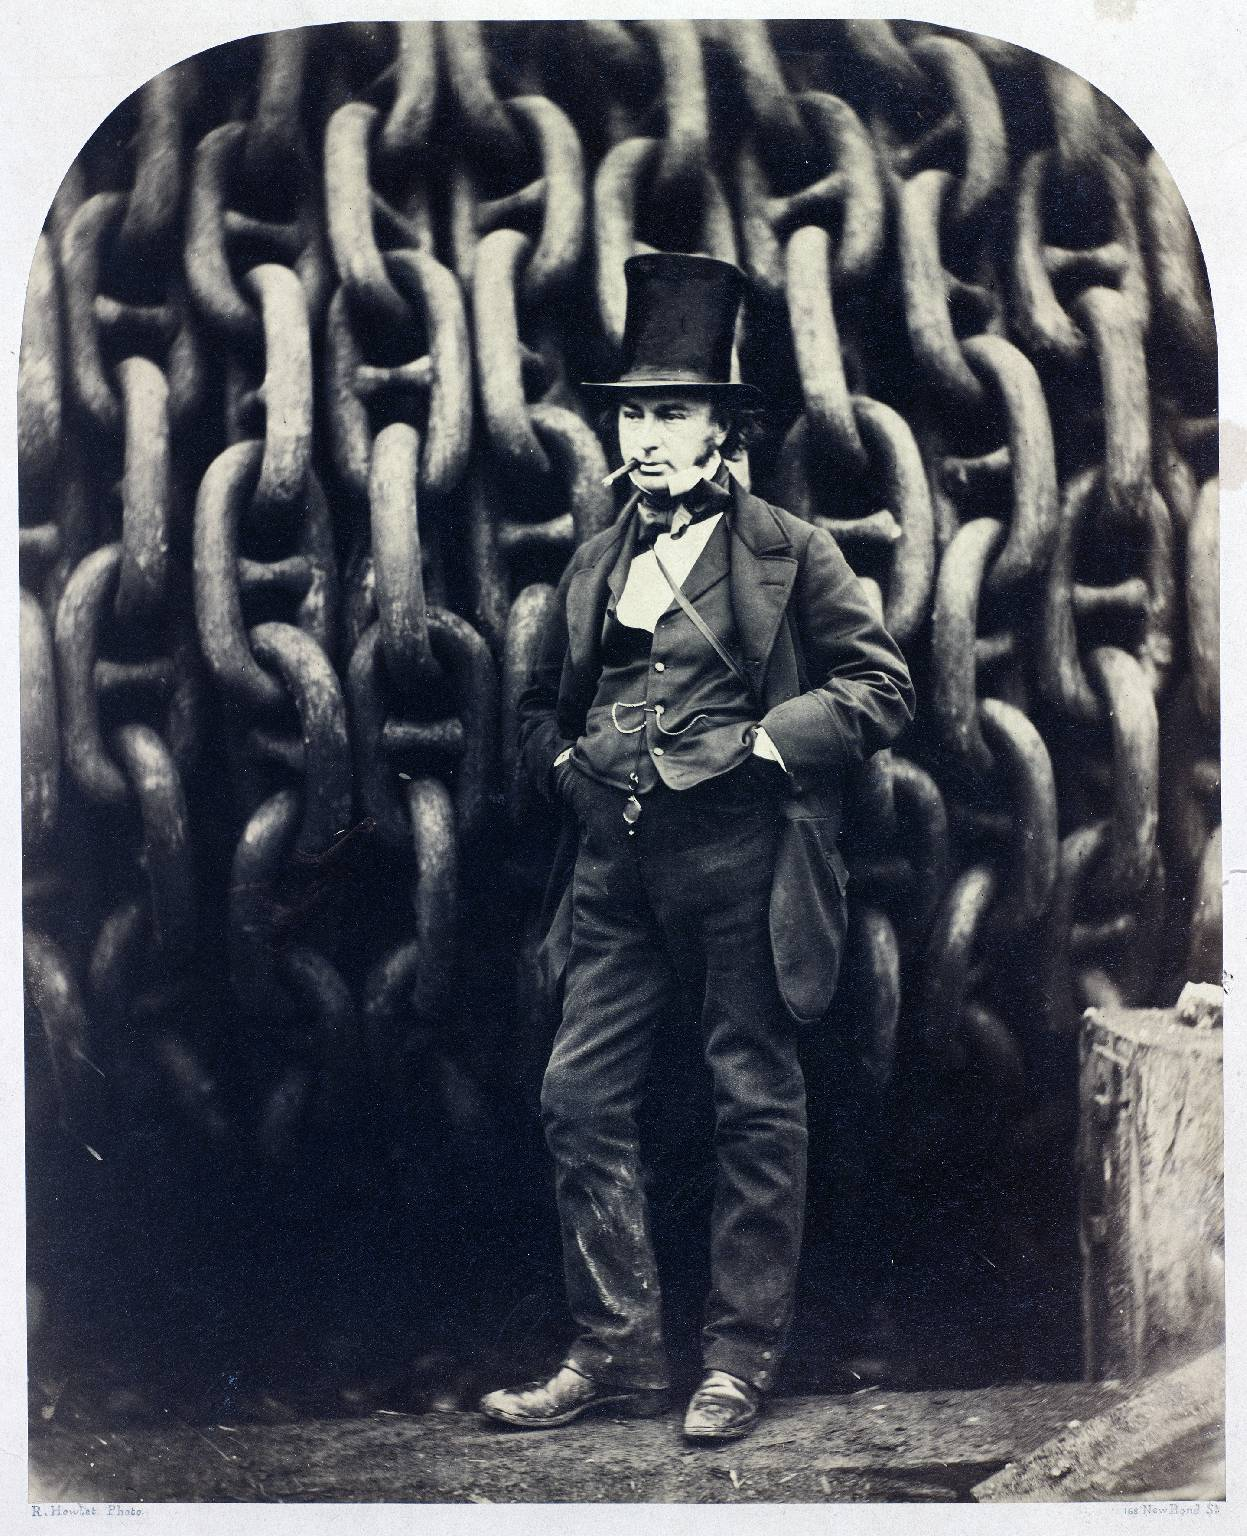 Photograph of Isambard Kingdom Brunel by the Launching Chains of SS Great Eastern